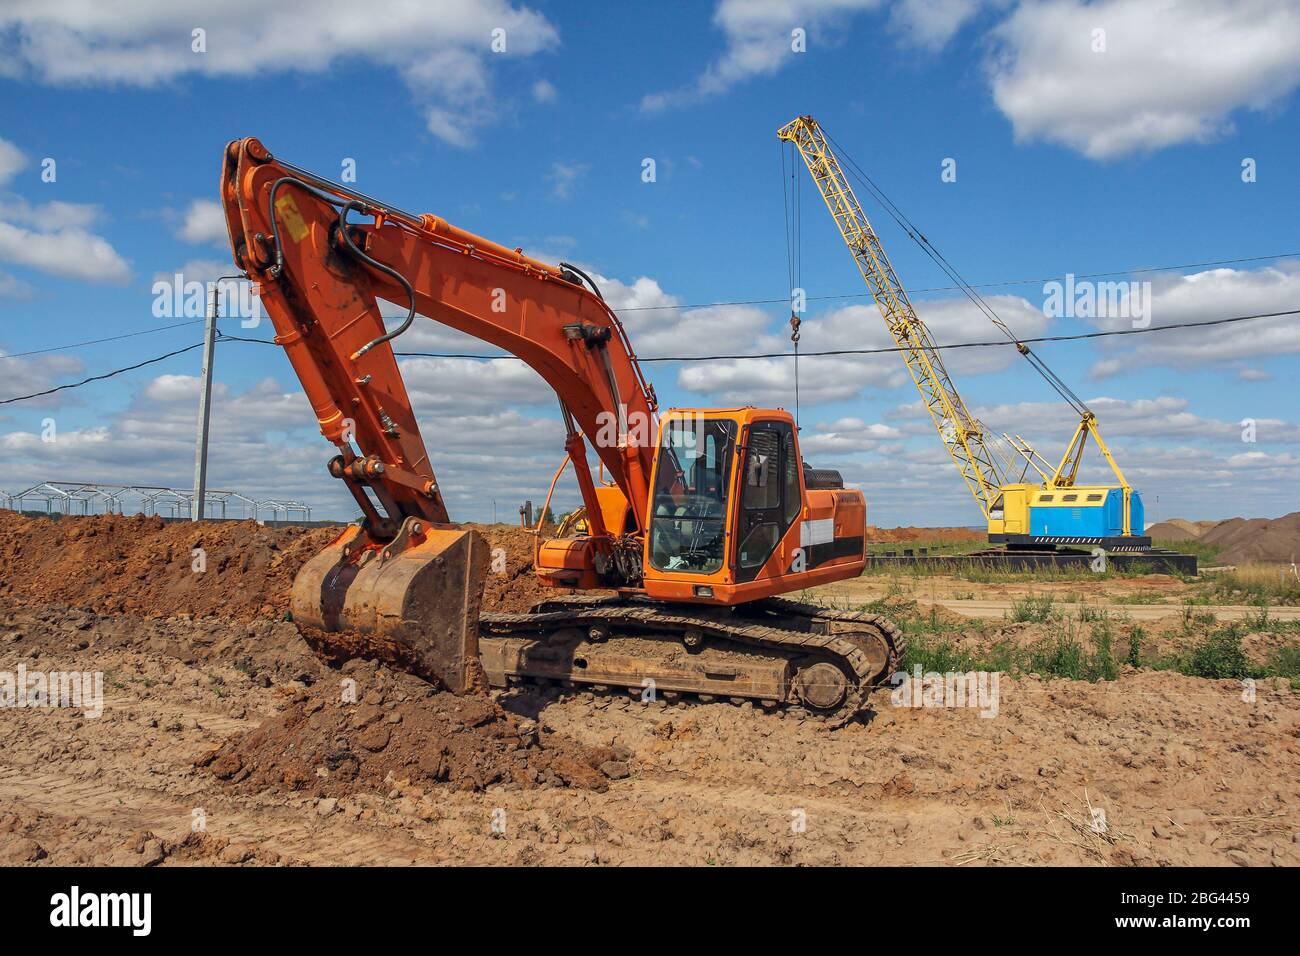 Page 10 Excavator Loading Truck High Resolution Stock Photography And Images Alamy